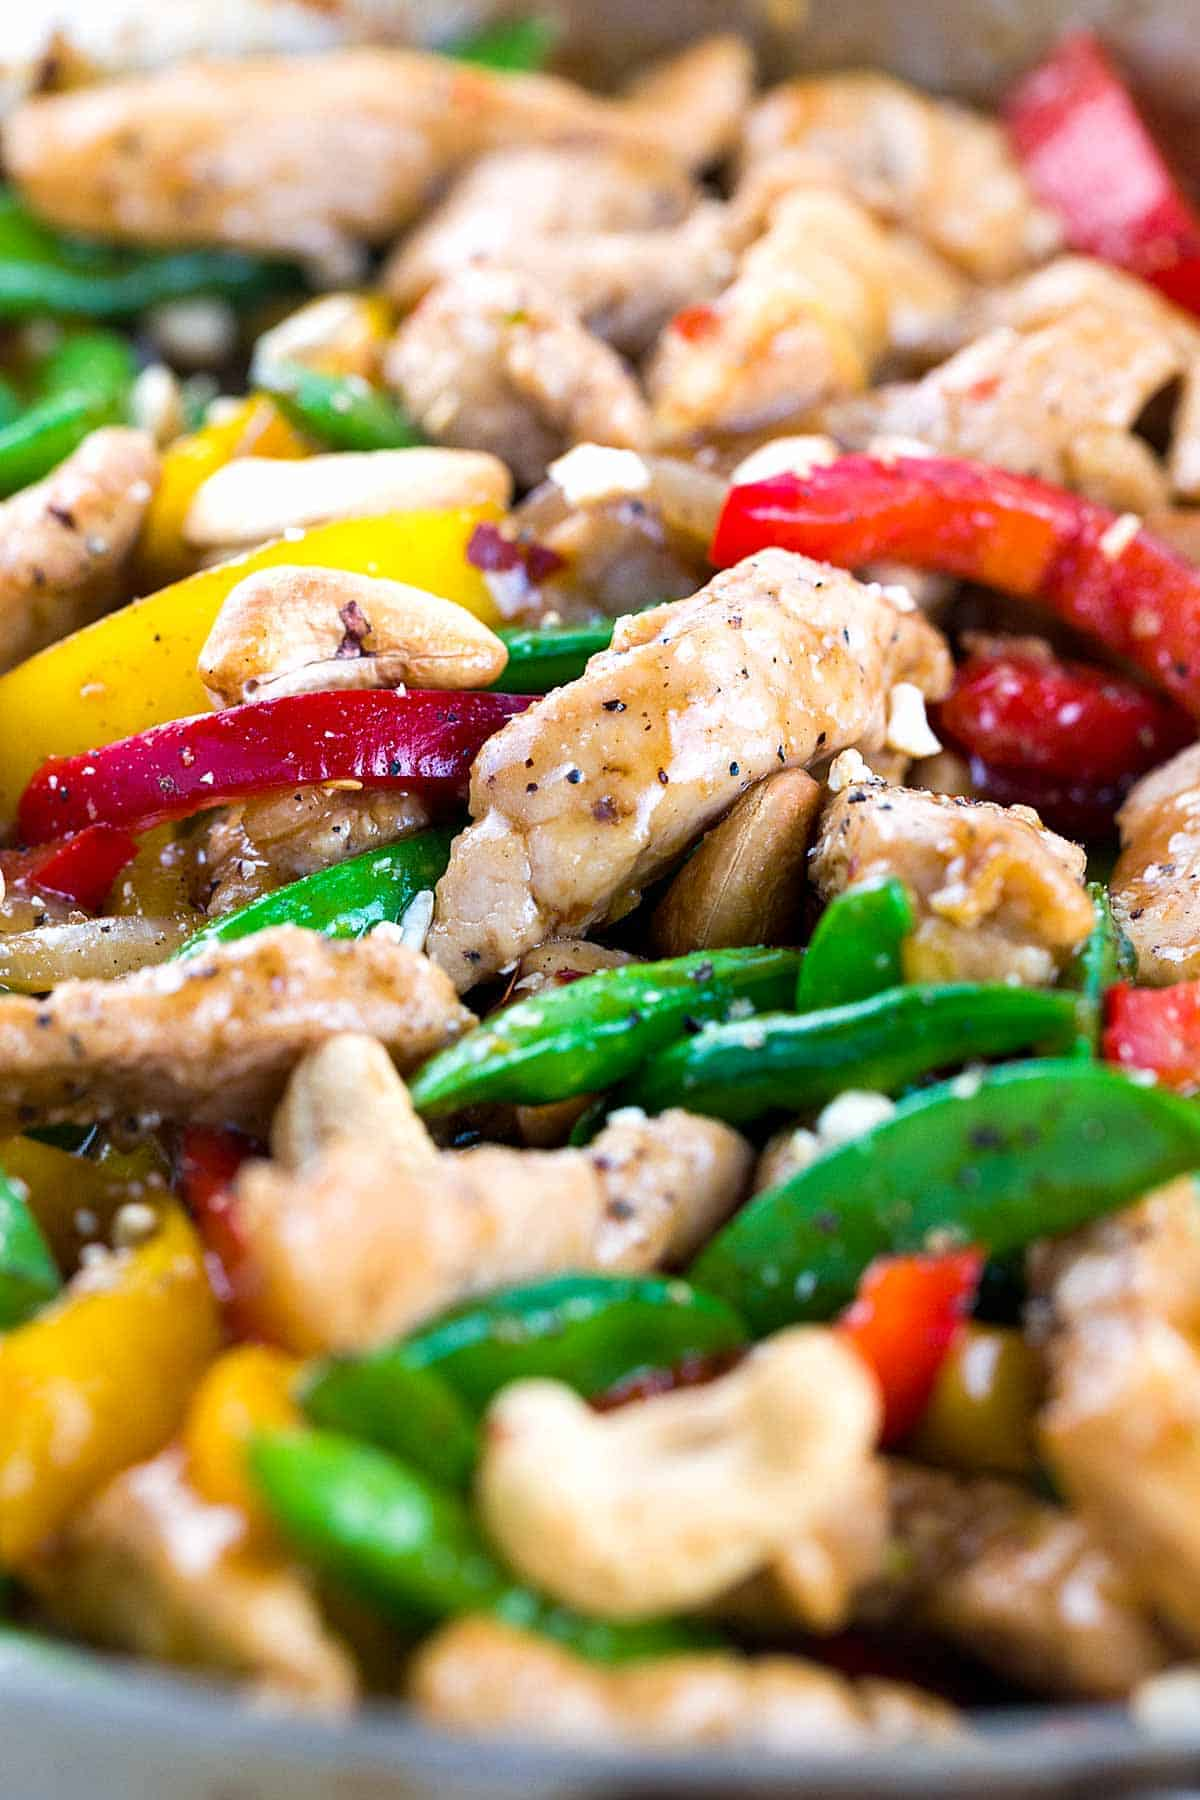 Pieces of pork and vegetables in a wok